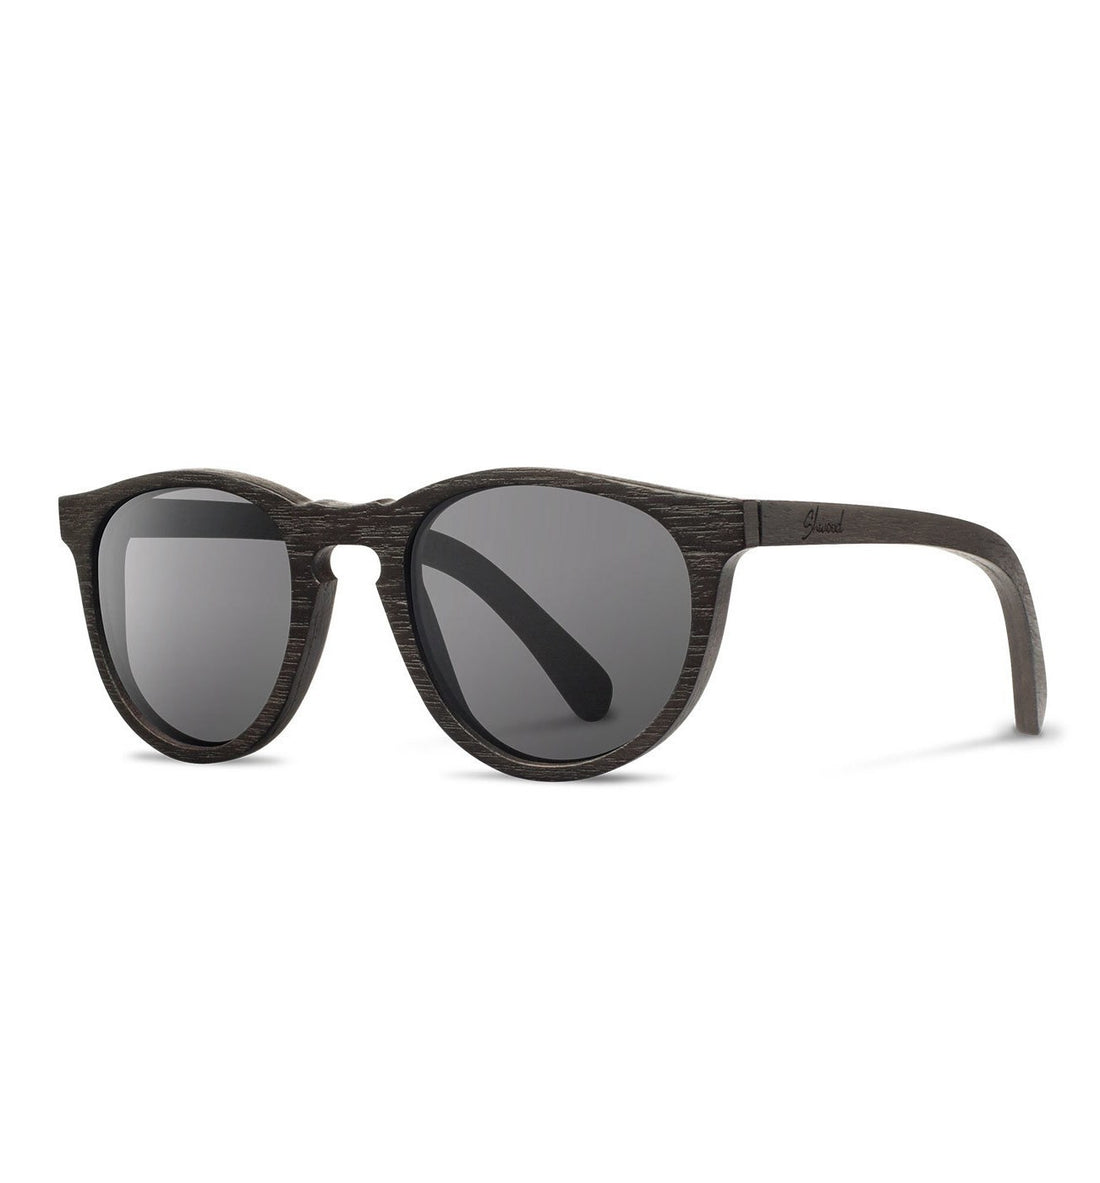 Shwood Belmont - Accessories: Eyewear - Iron and Resin